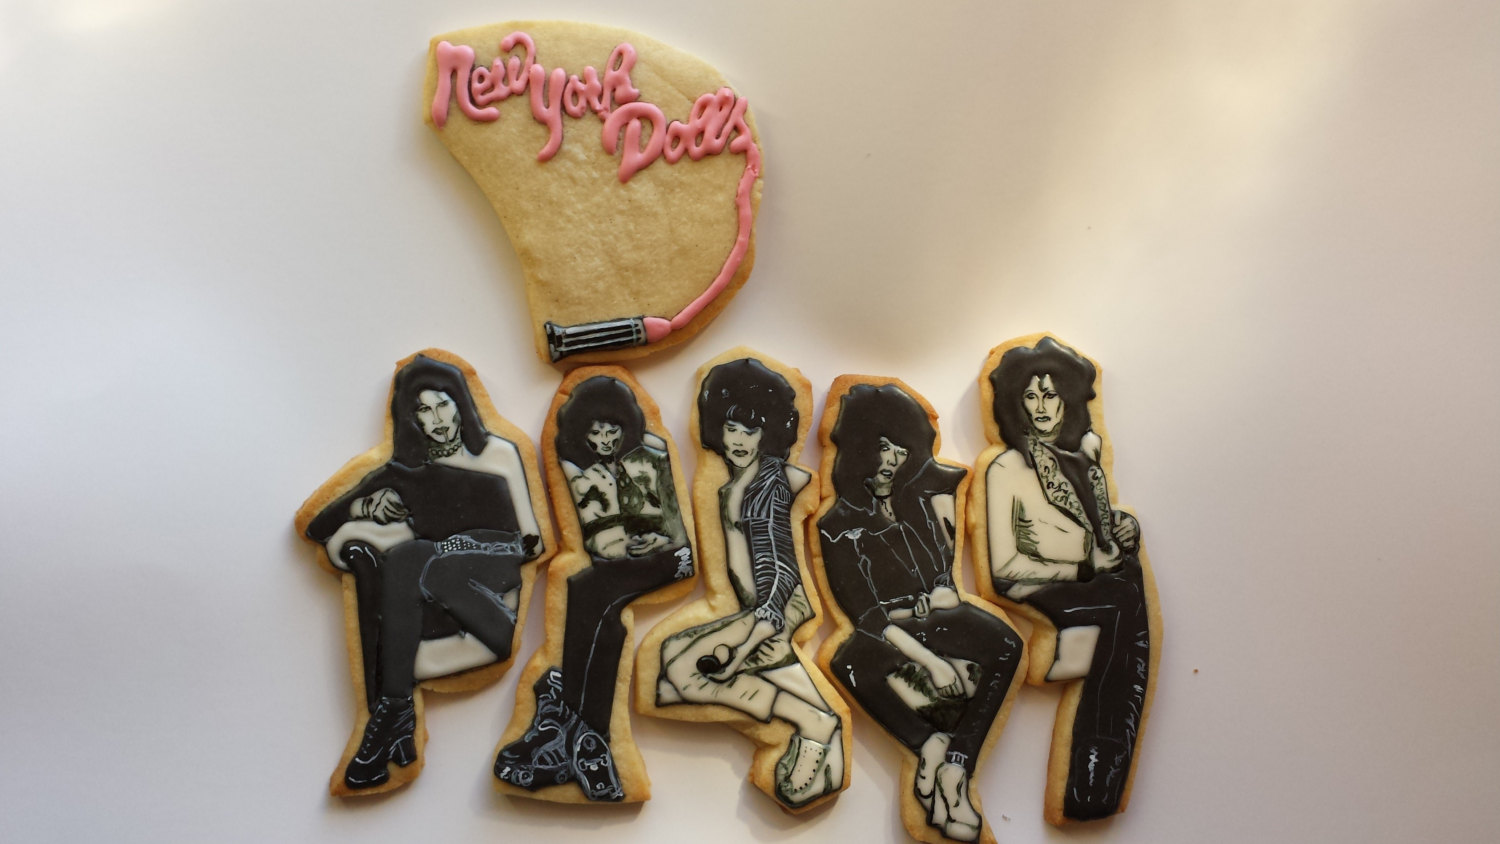 Ramones and the New York Dolls cookies